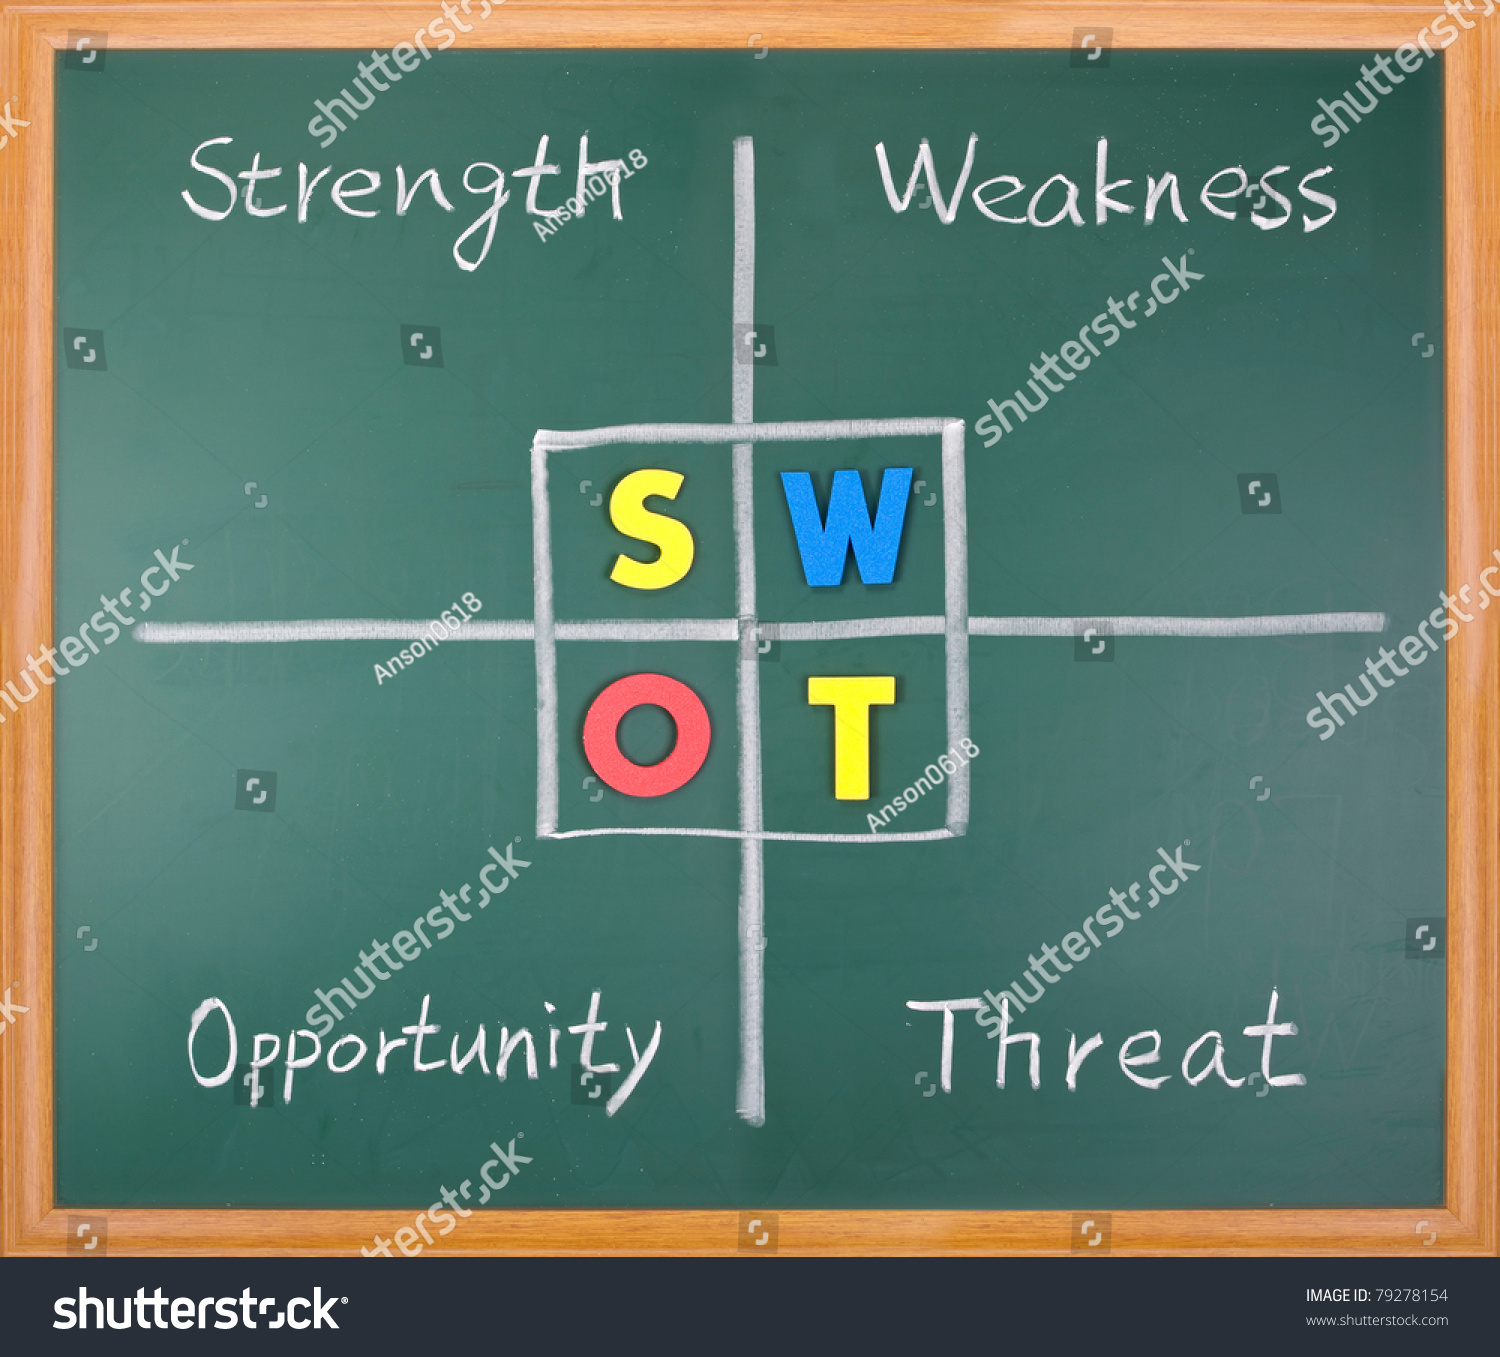 swot analysis strength weakness opportunity threat stock photo swot analysis strength weakness opportunity and threat words on blackboard